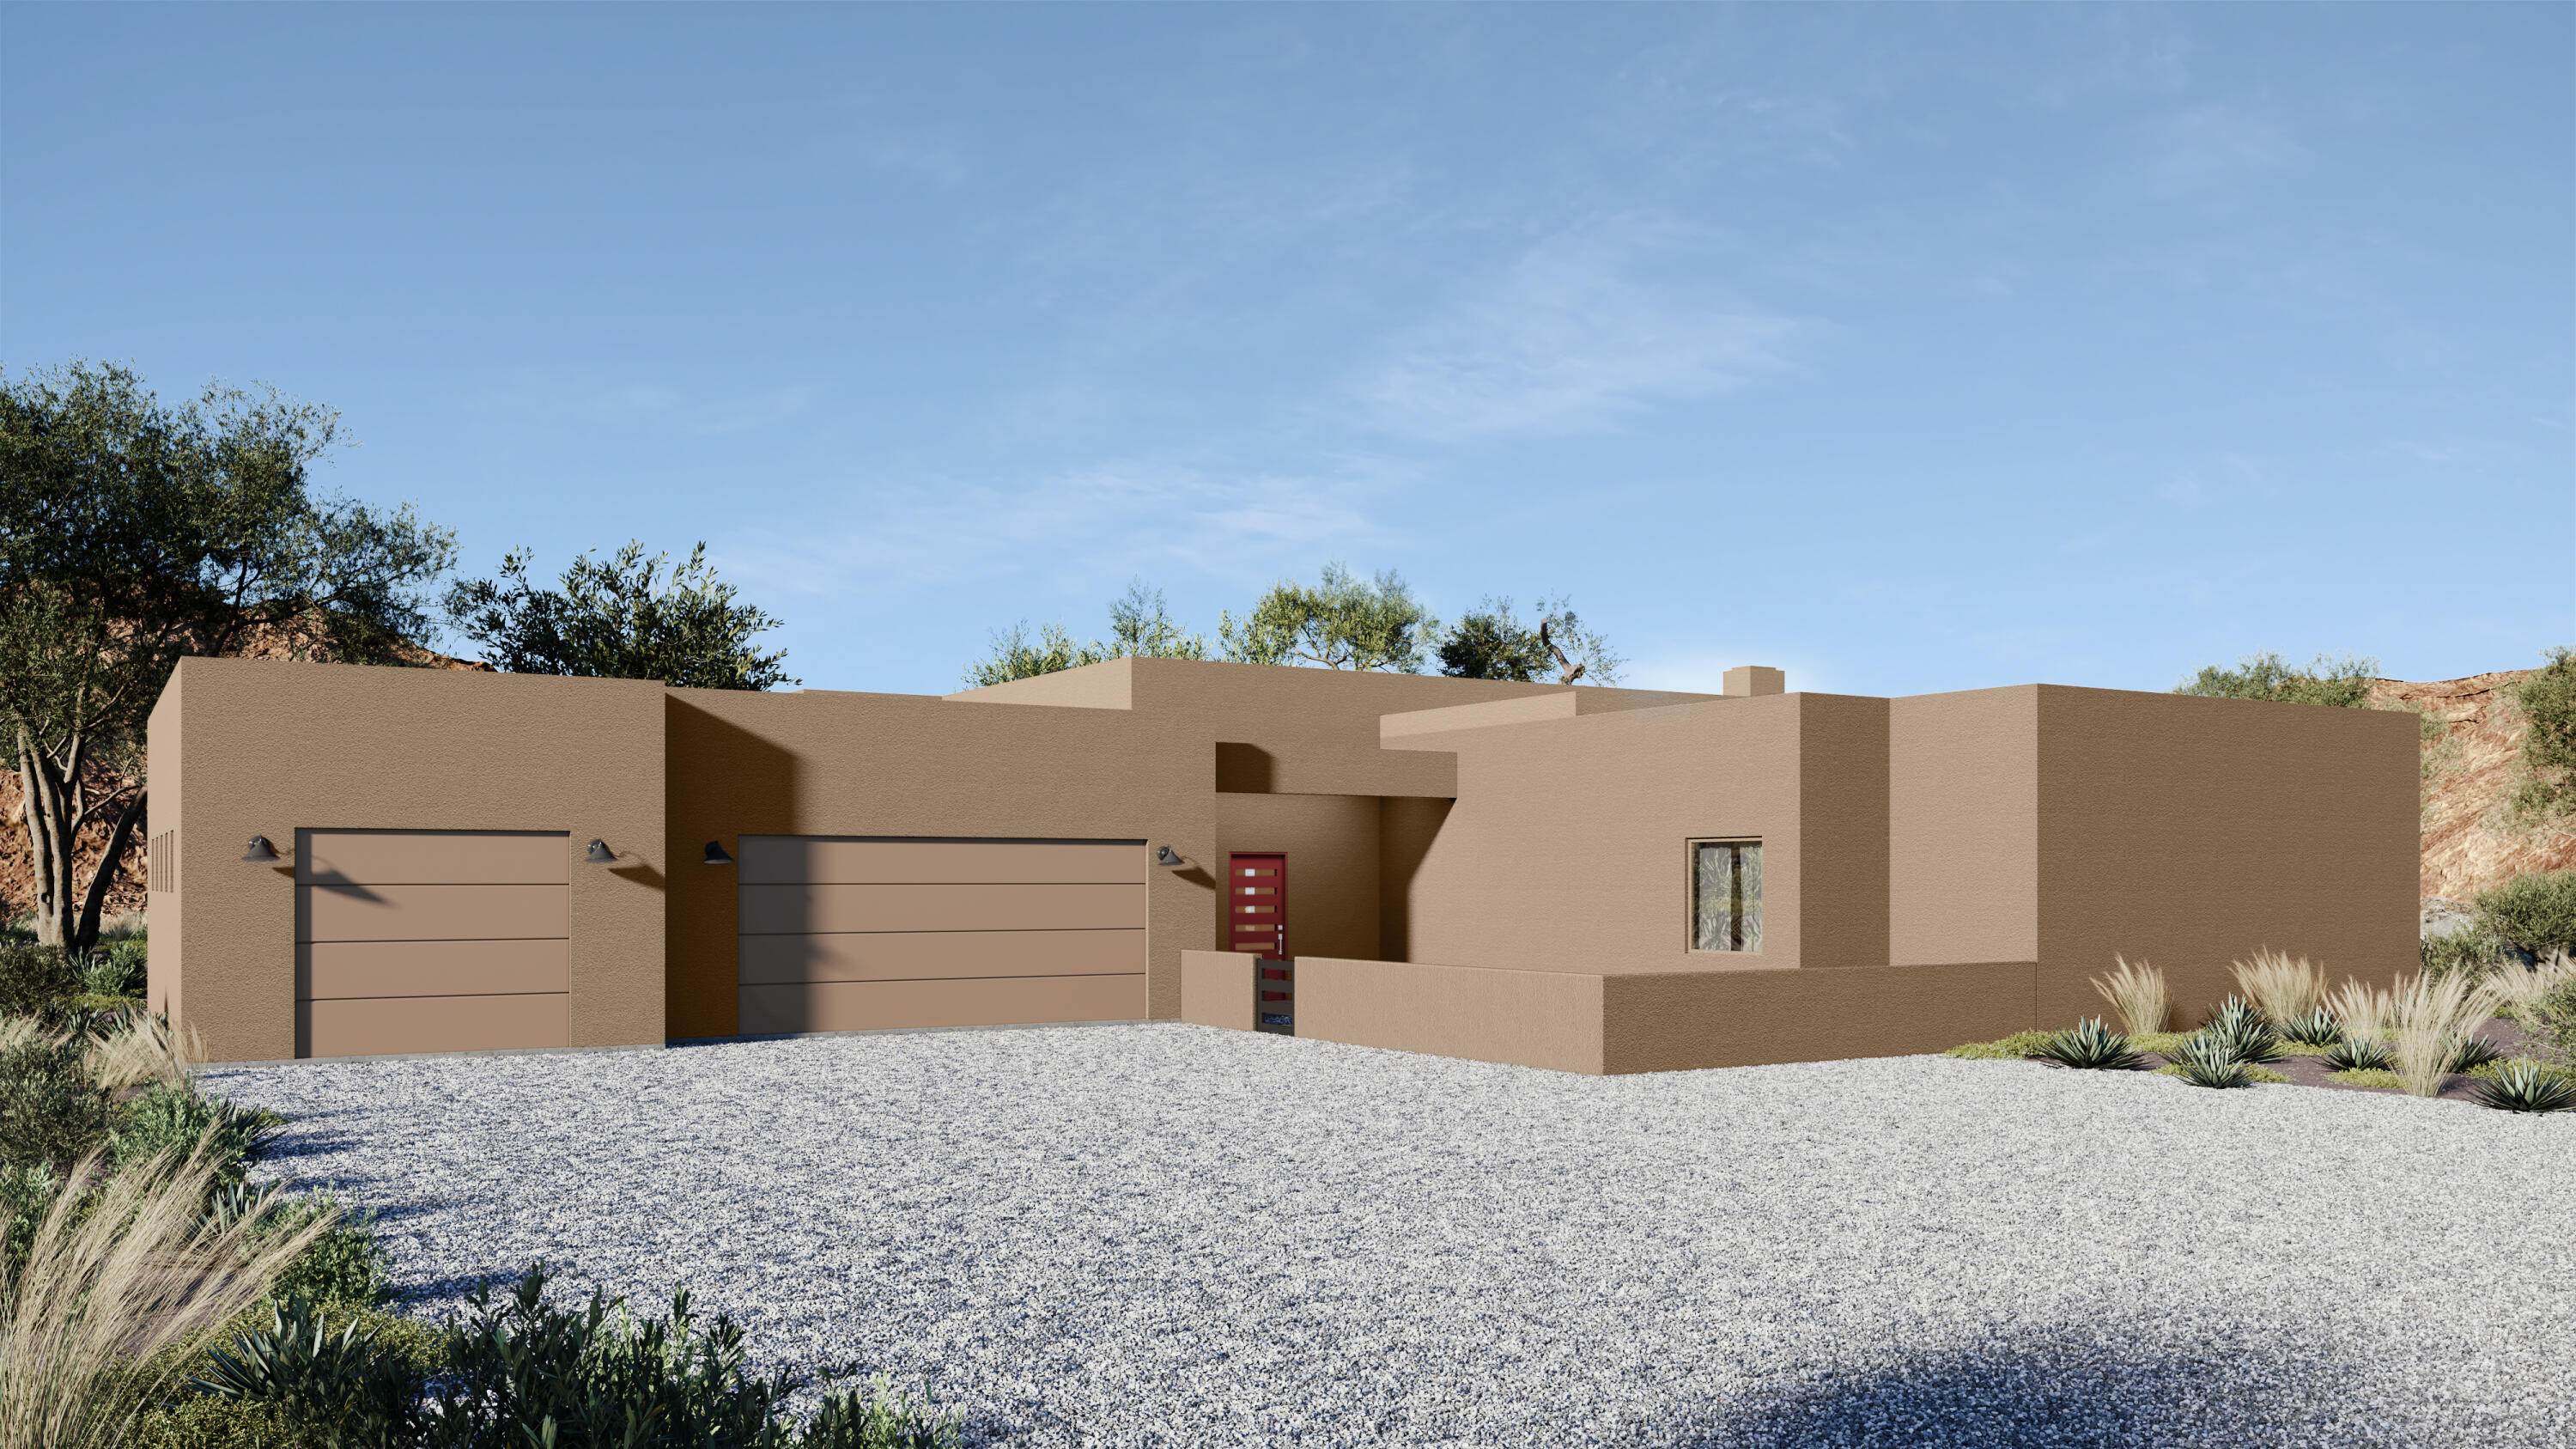 Under construction - single level custom home in the desirable Placitas' Anasazi Meadows subdivision.  Panoramic views of the Sandia Mountains throughout the home and expansive covered patio. The chef's kitchen features custom cabinets, granite counters & island, custom tile backsplash, breakfast bar, Subzero refrigerator, Wolf gas range and micro-drawer, vent hood, Asko dishwasher & pantry. Custom touches include: wood ceilings, unique light fixtures, custom gas log fireplace, wood-look tile throughout living areas.  The split master suite has a huge walk-in closet w/ built-ins, and the spa-like en-suite bath features a dual vanity, large jetted tub & separate shower.  Large 3 car garage w/epoxy floors.  Flat lot w/ lots of room. Welcome home!